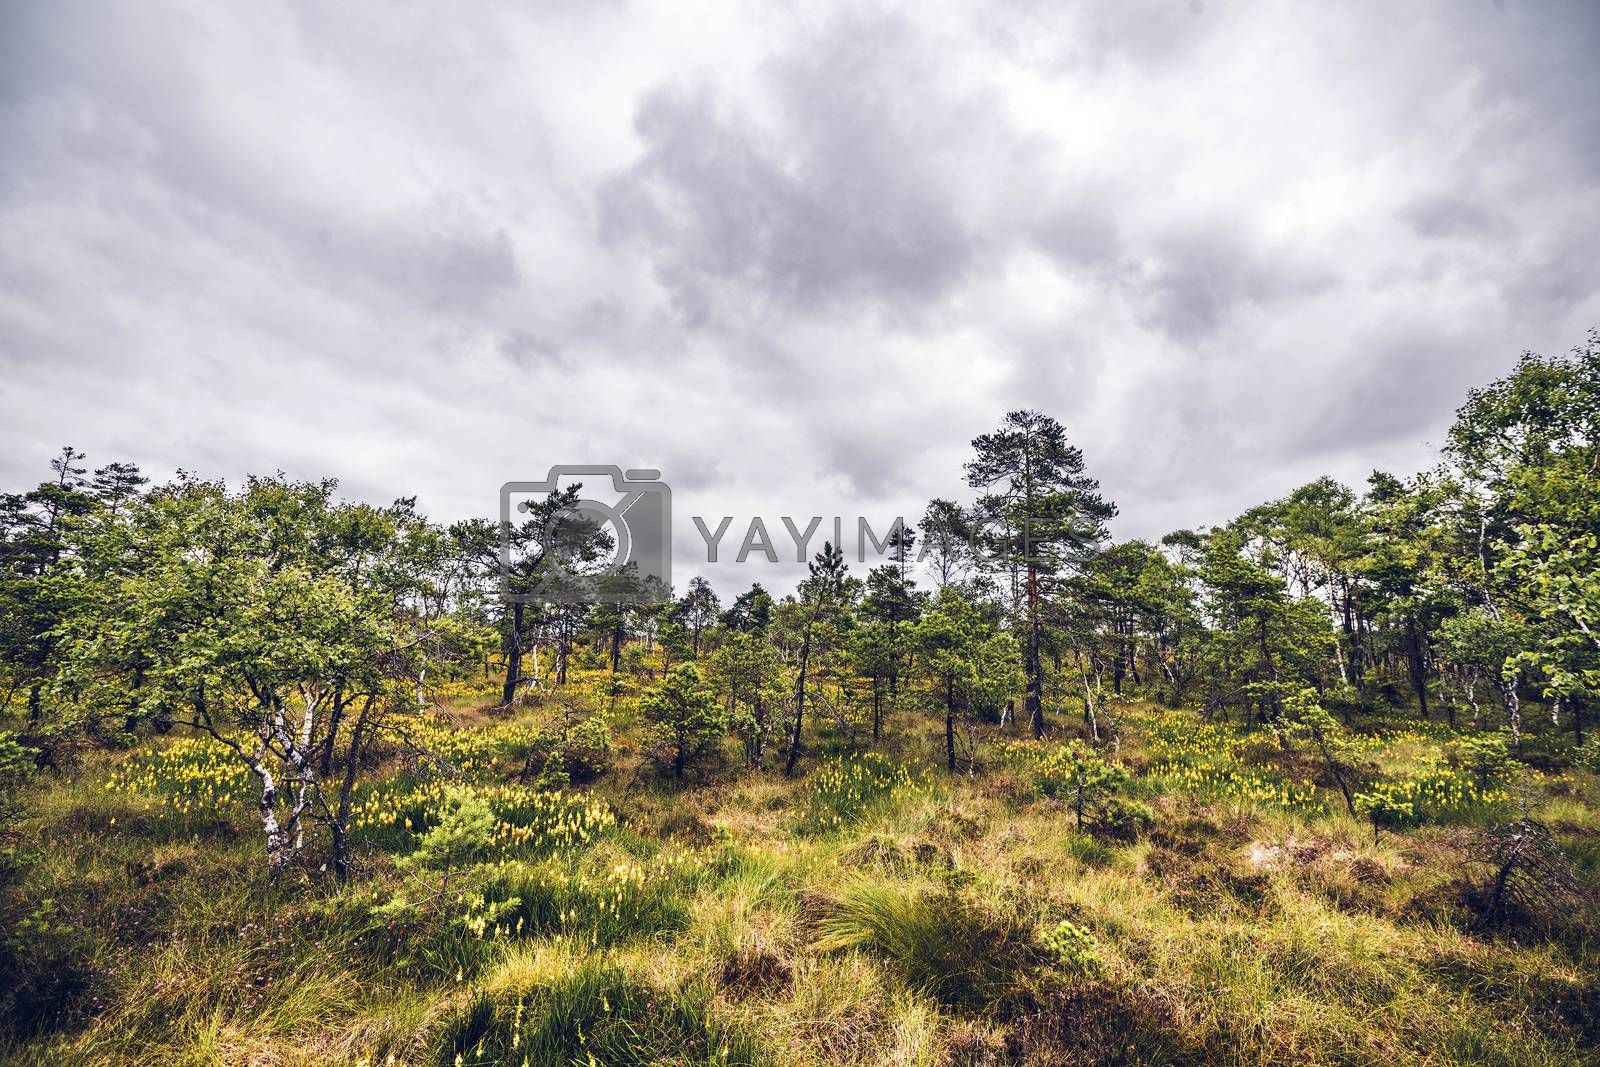 Wilderness landscape with grass and wildflowers in a moss with trees in cloudy weather